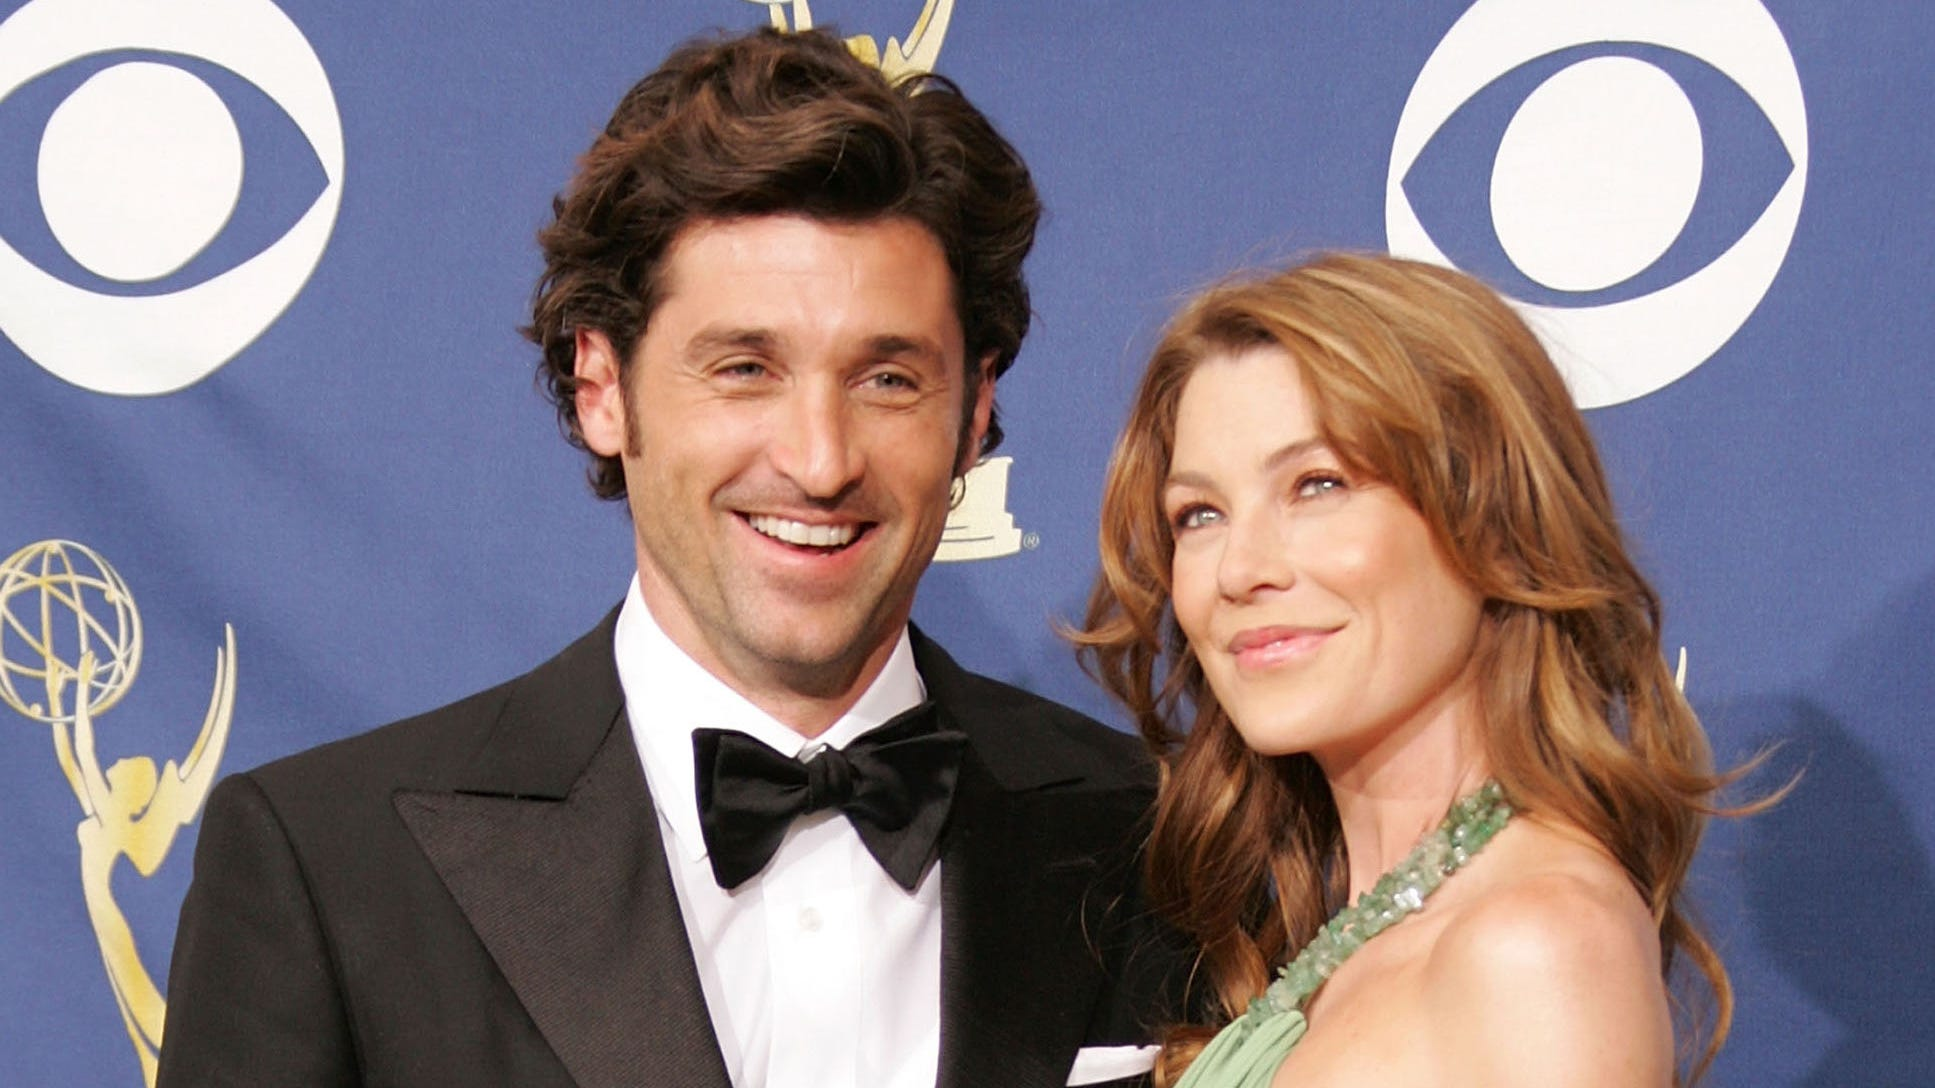 The cast of 'Grey's Anatomy' ranked by net worth